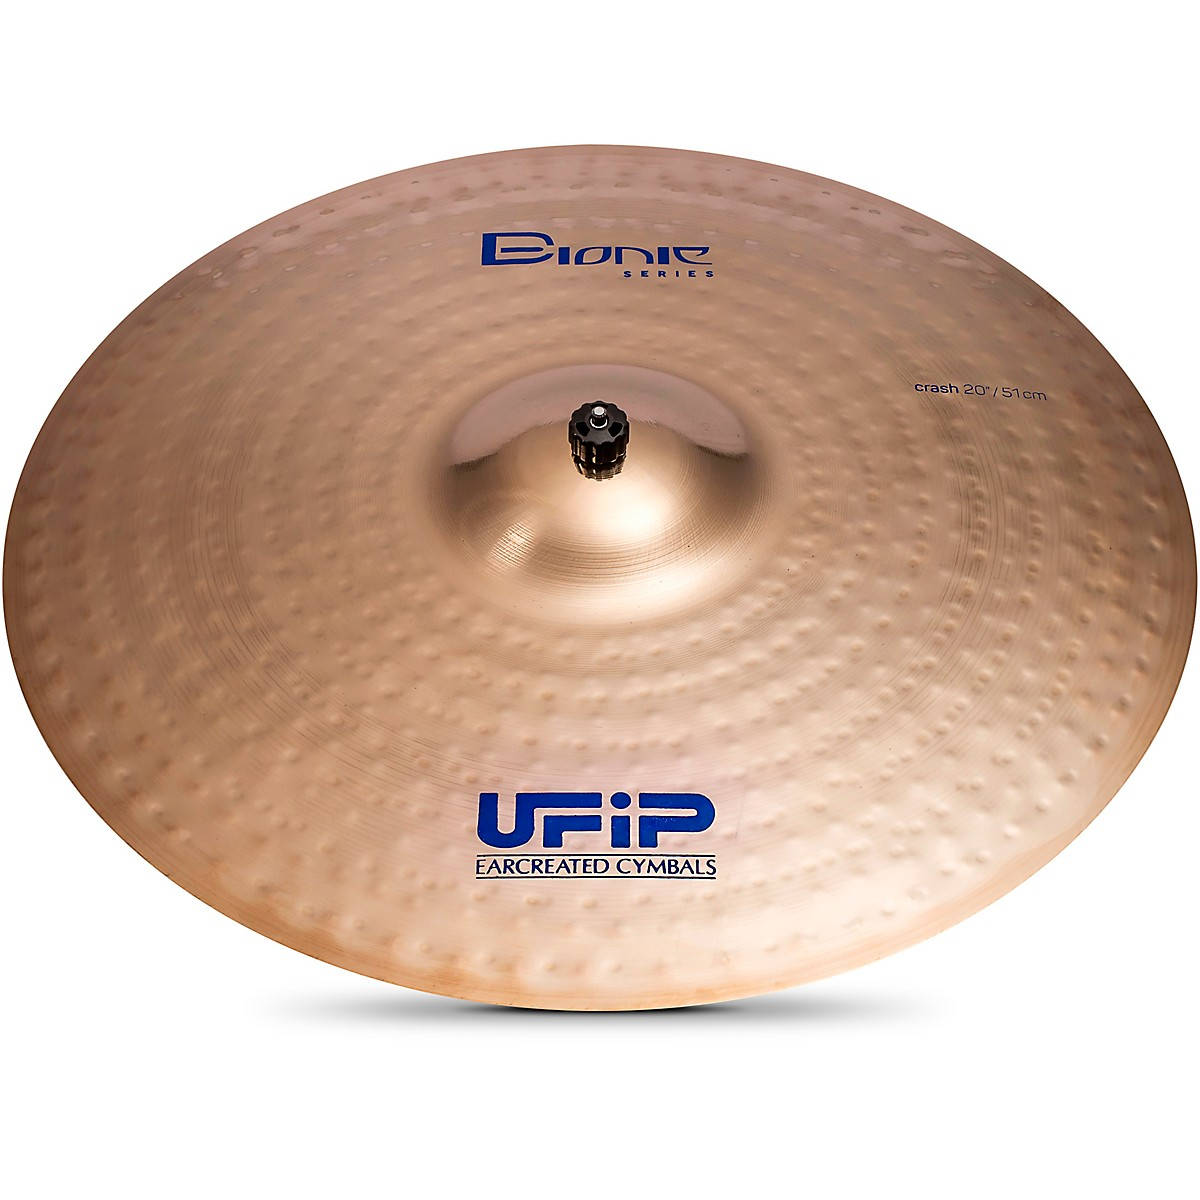 UFIP Bionic Series Crash Cymbal